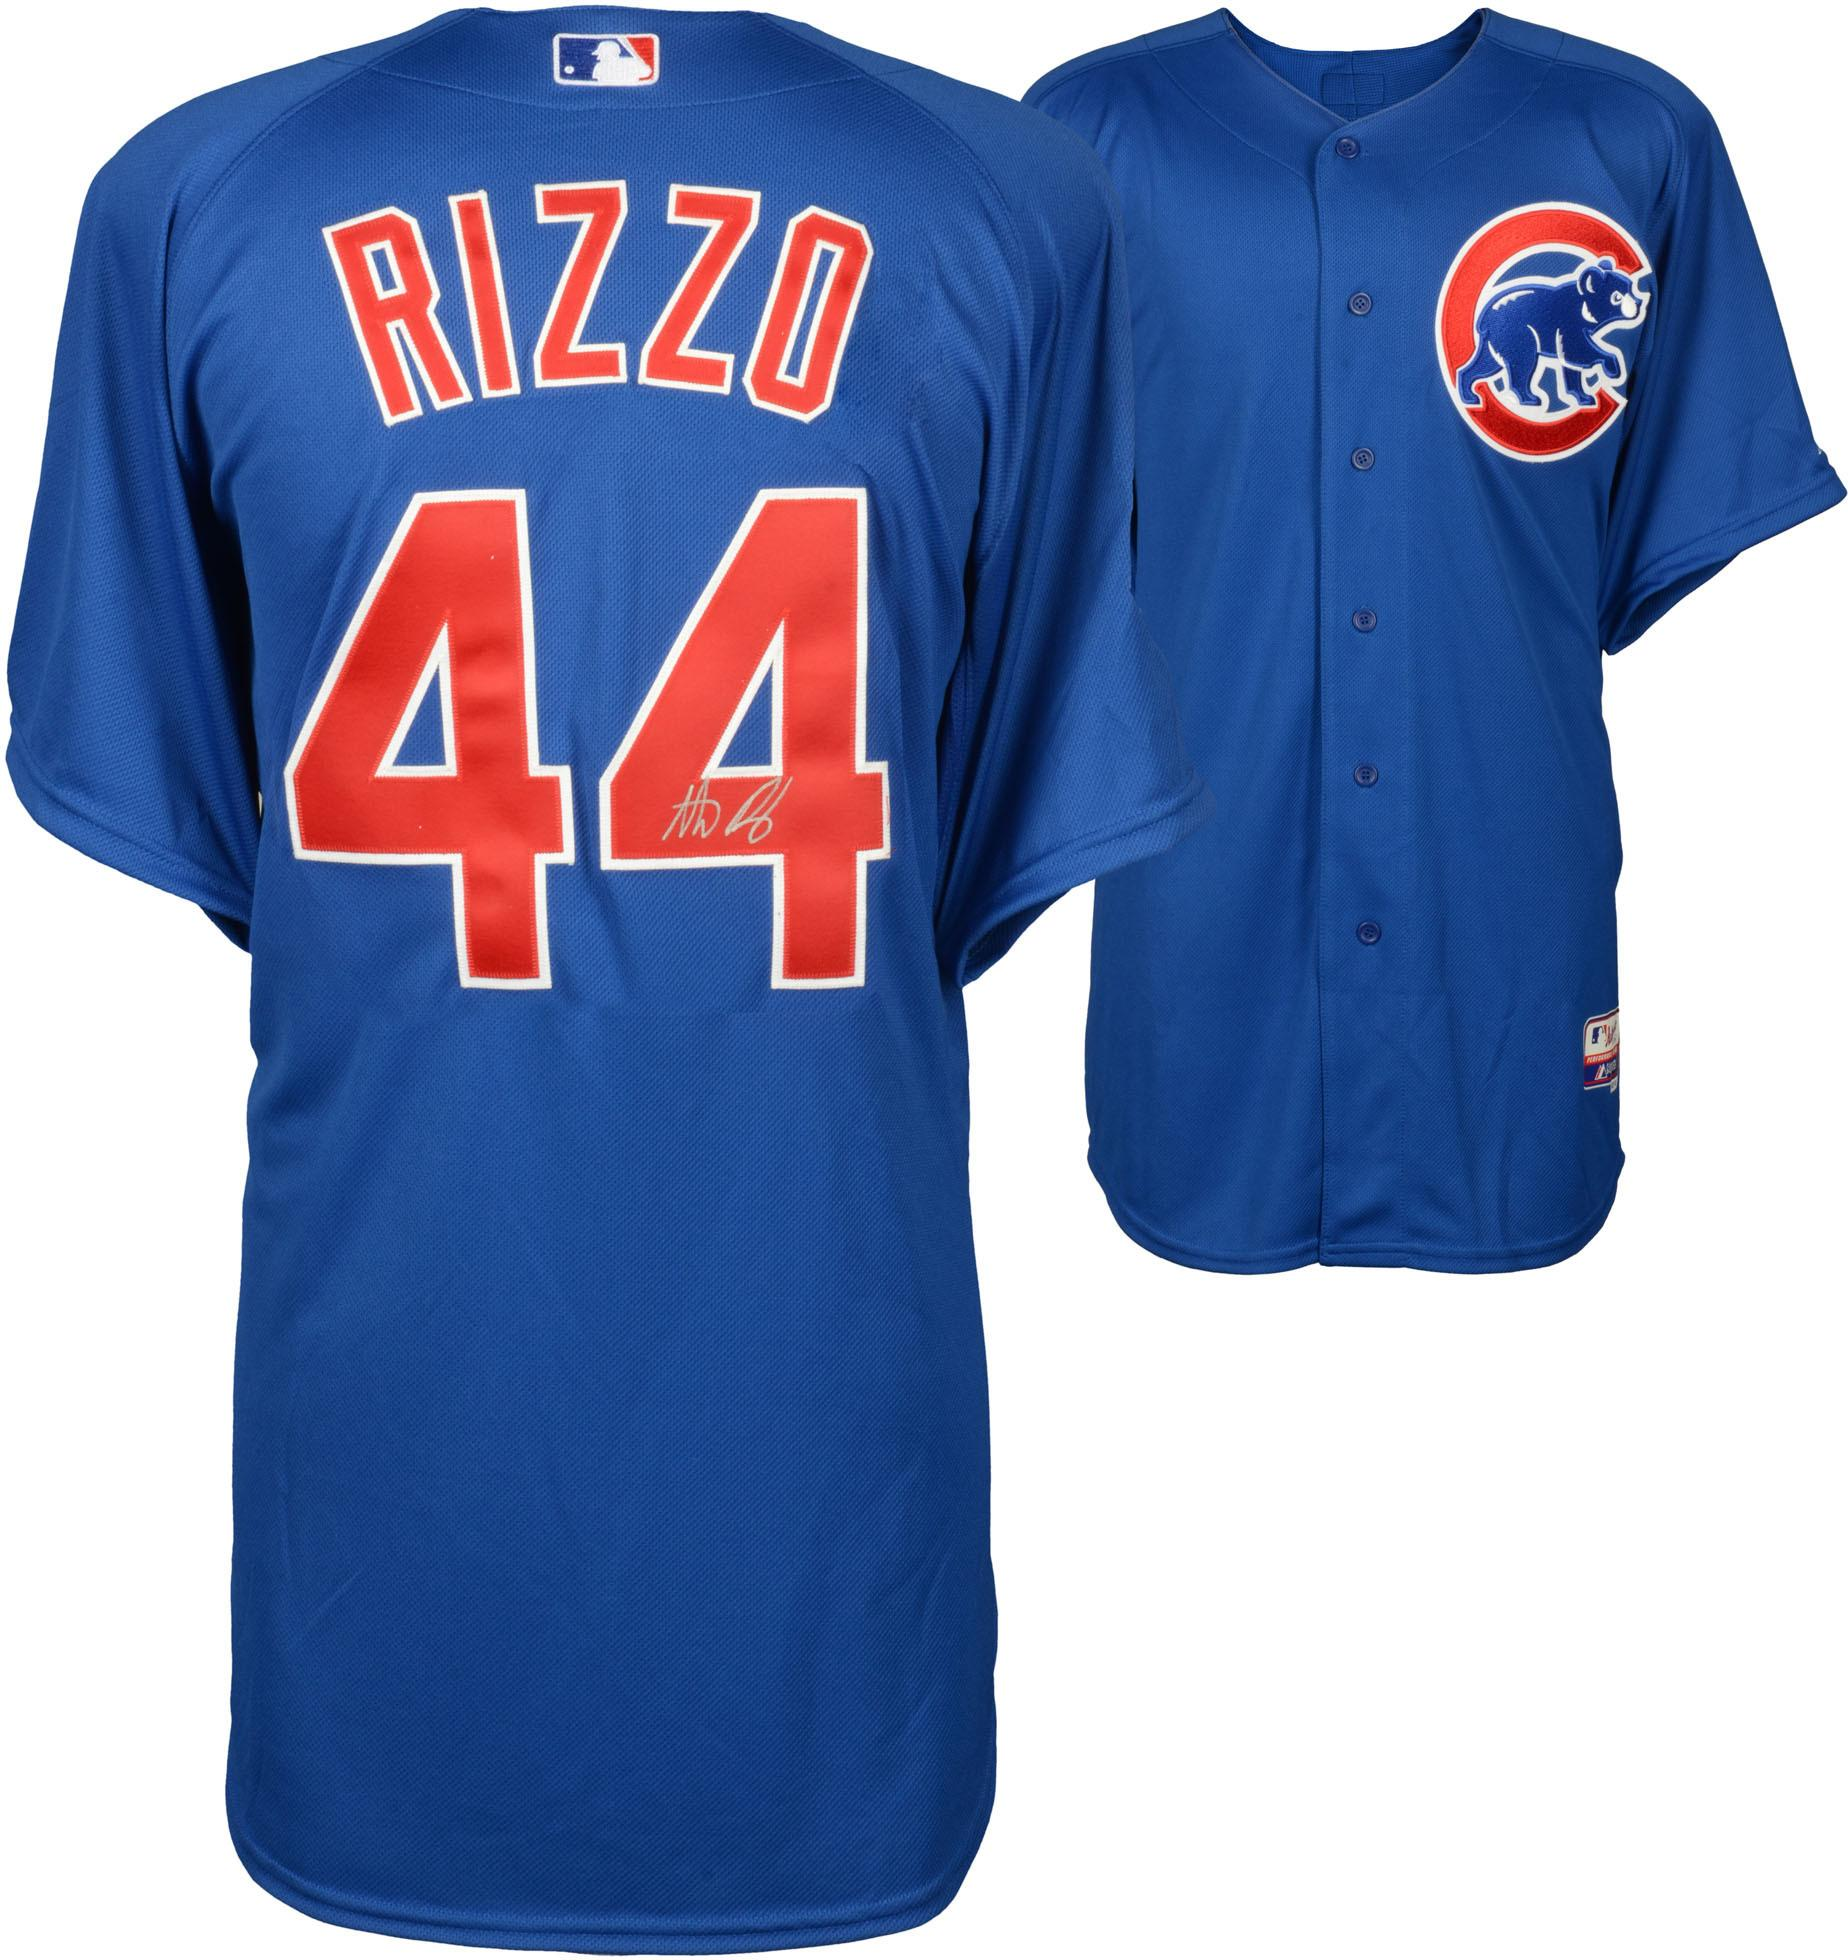 Anthony Rizzo Chicago Cubs Autographed Blue Authentic Jersey